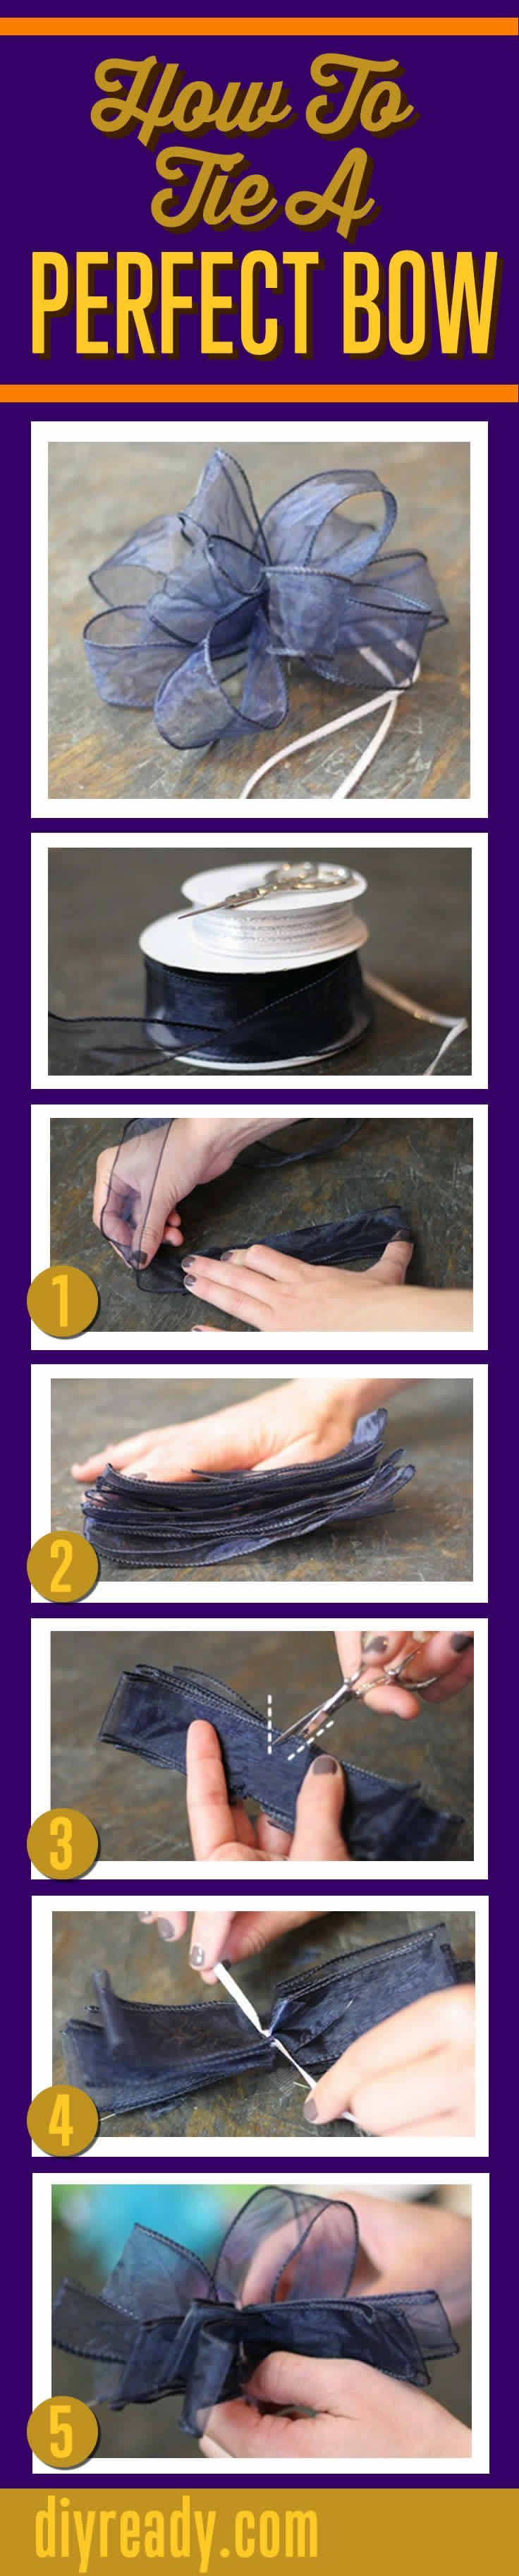 How To Tie A Bow With Ribbon - Perfect, Beautiful Big Gift Bows Made Easy With This Step-by-Step Infographic | DIY Projects by DIY Ready http://diyready.com/how-to-tie-a-bow-with-ribbon/